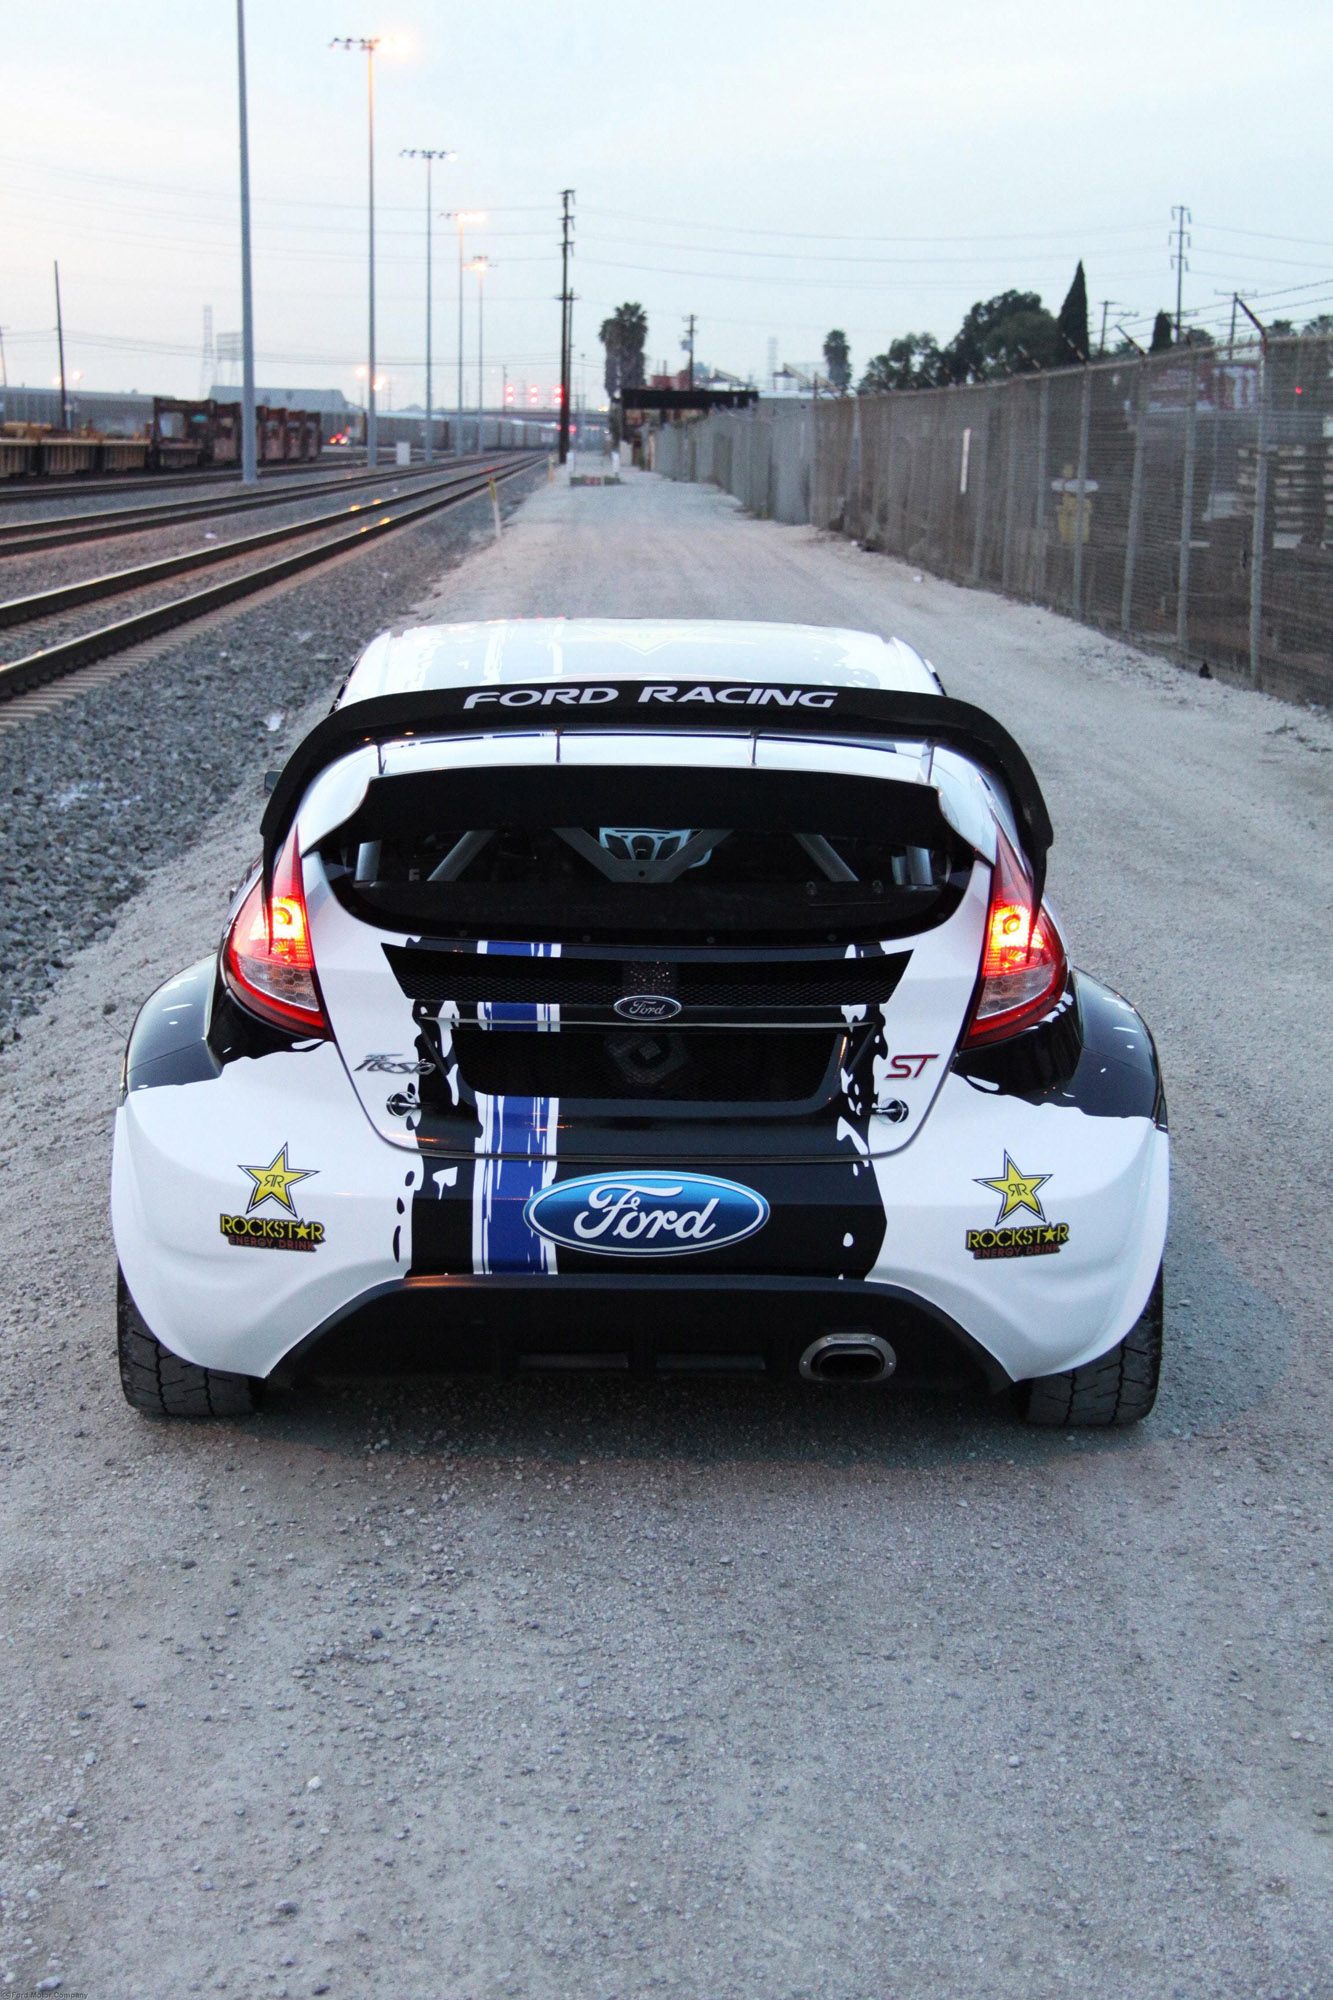 2012 Ford Focus Review >> Ford Fiesta ST Global RallyCross Championship Race Car